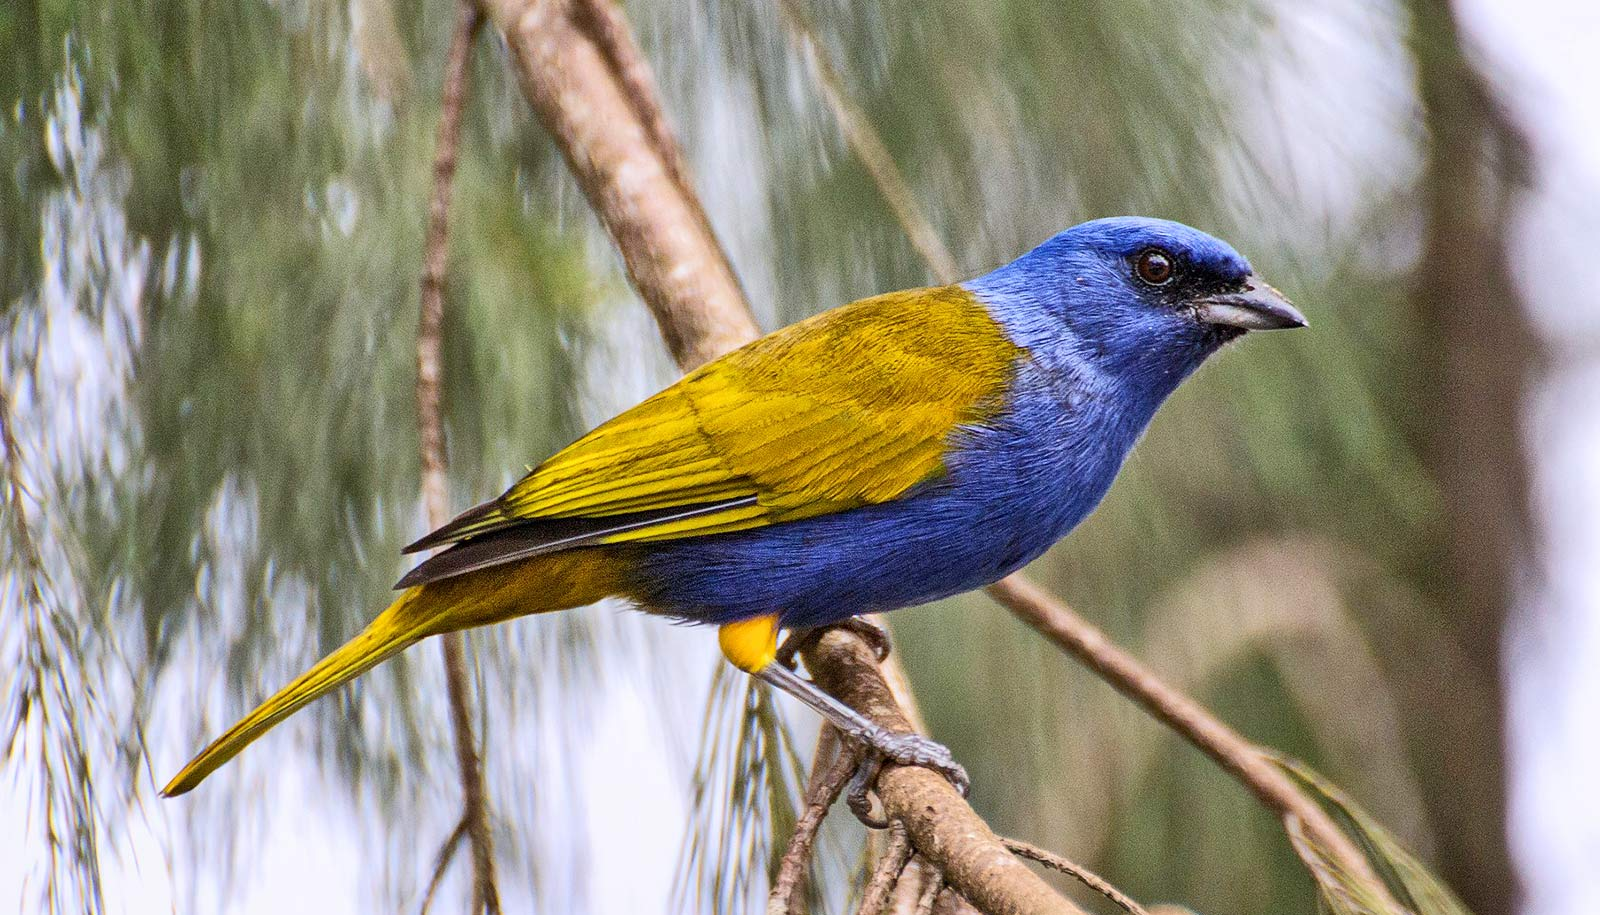 blue and yellow bird on branch